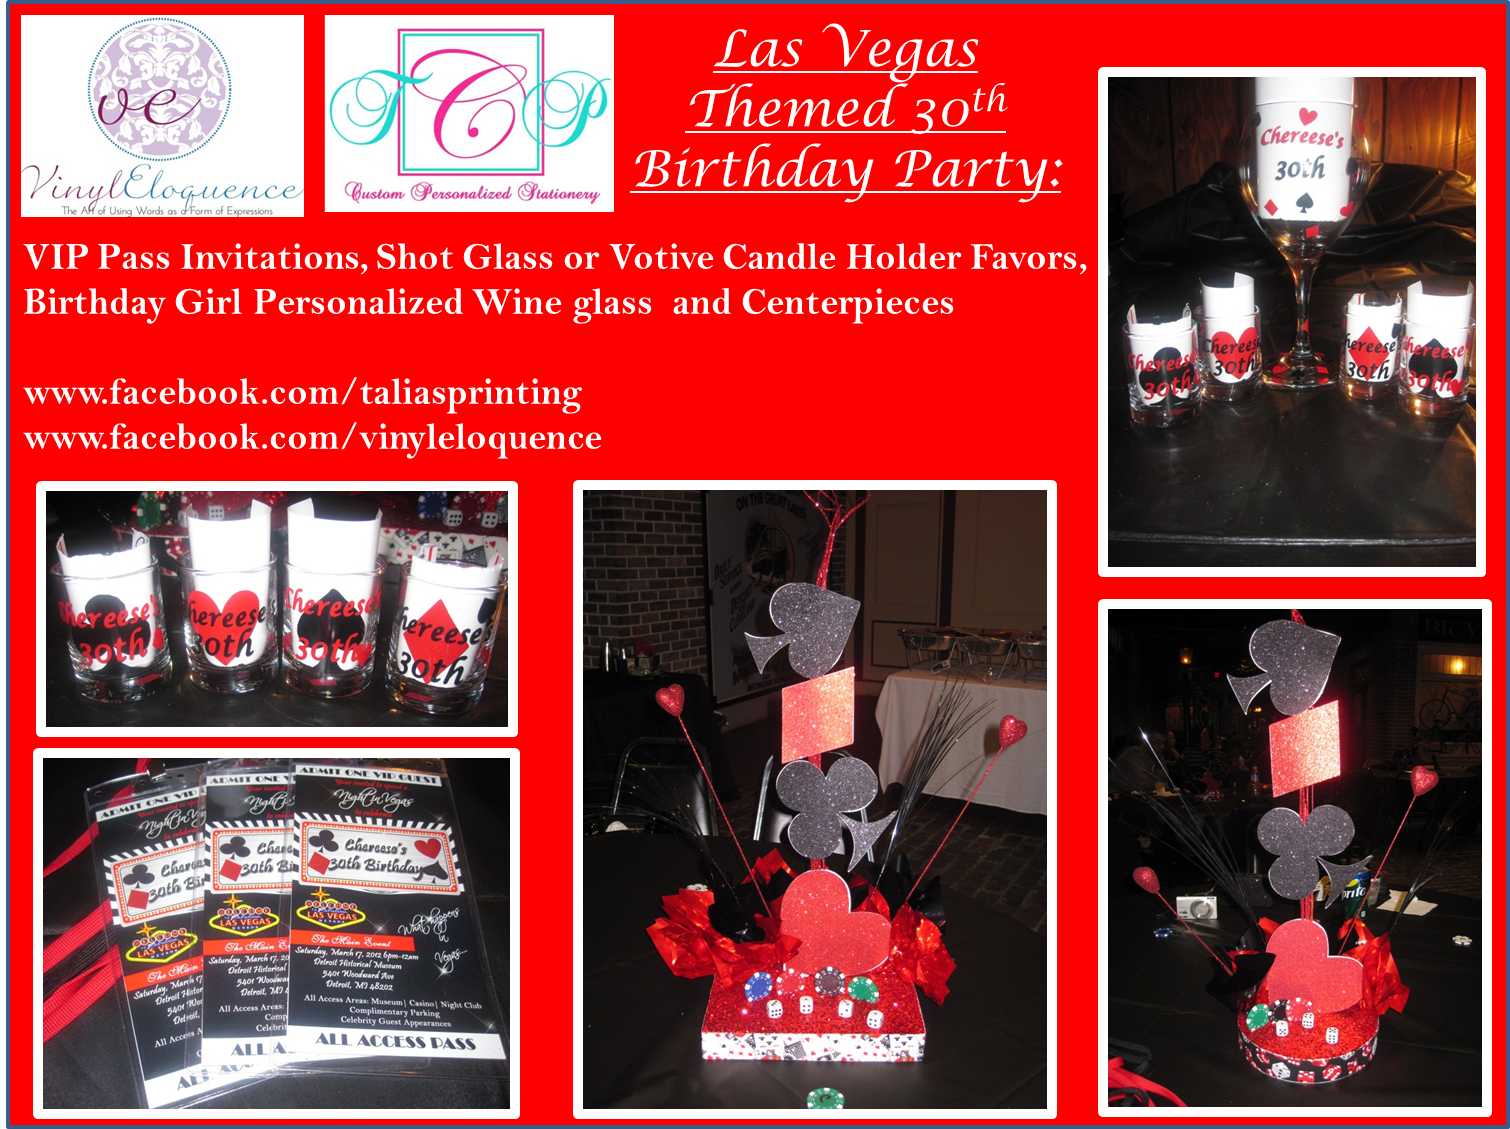 Las Vegas themed party package. VIP Pass Invitations